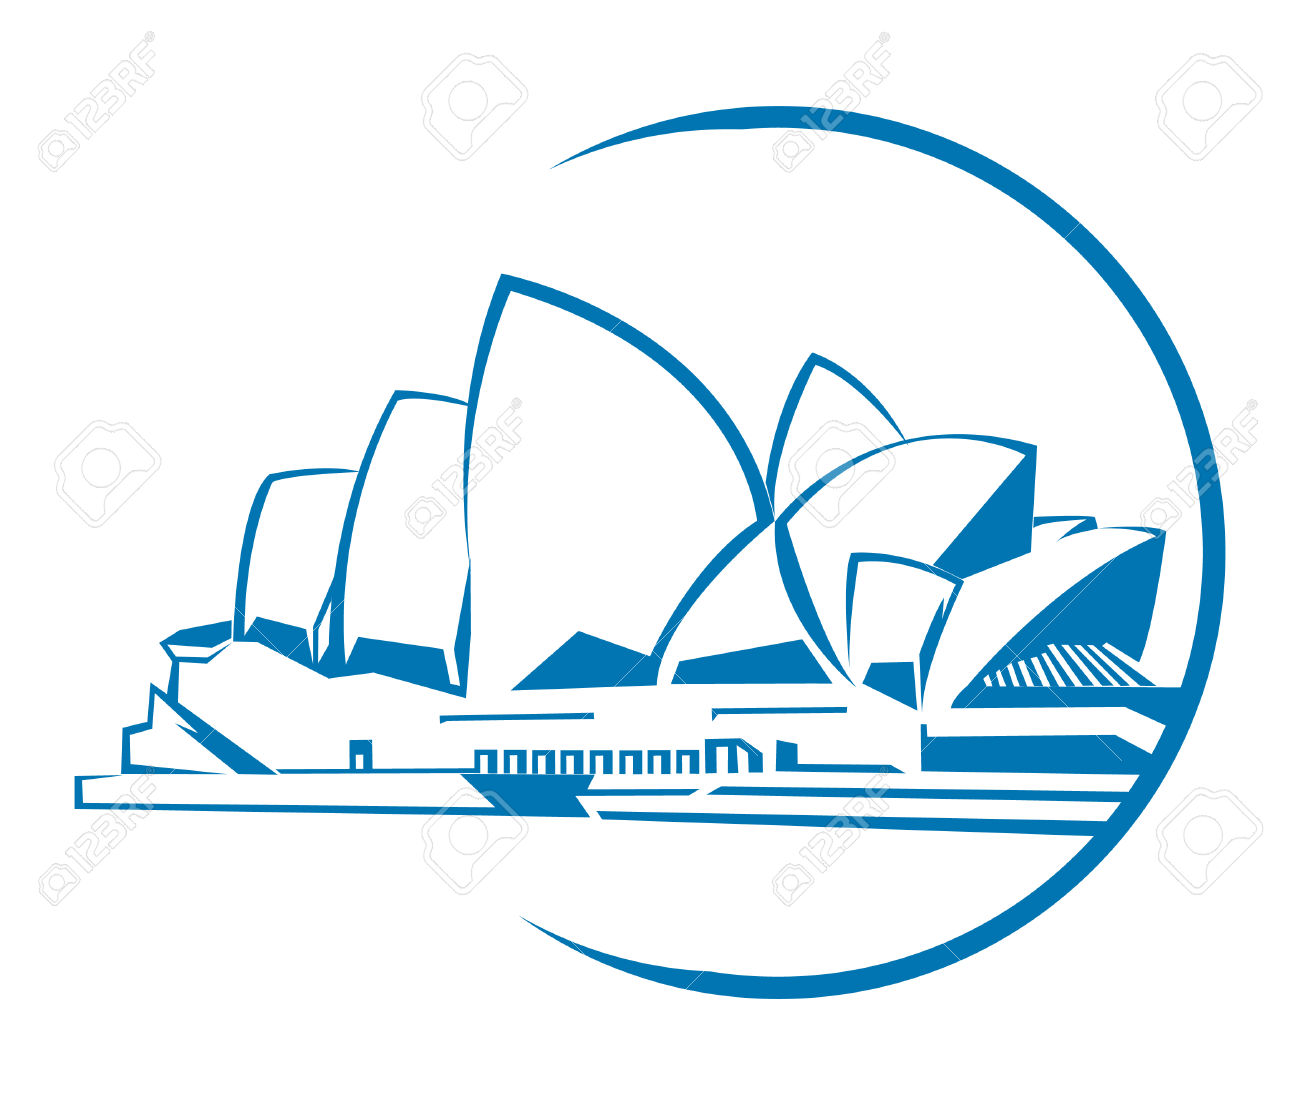 Sydney Opera House clipart #6, Download drawings